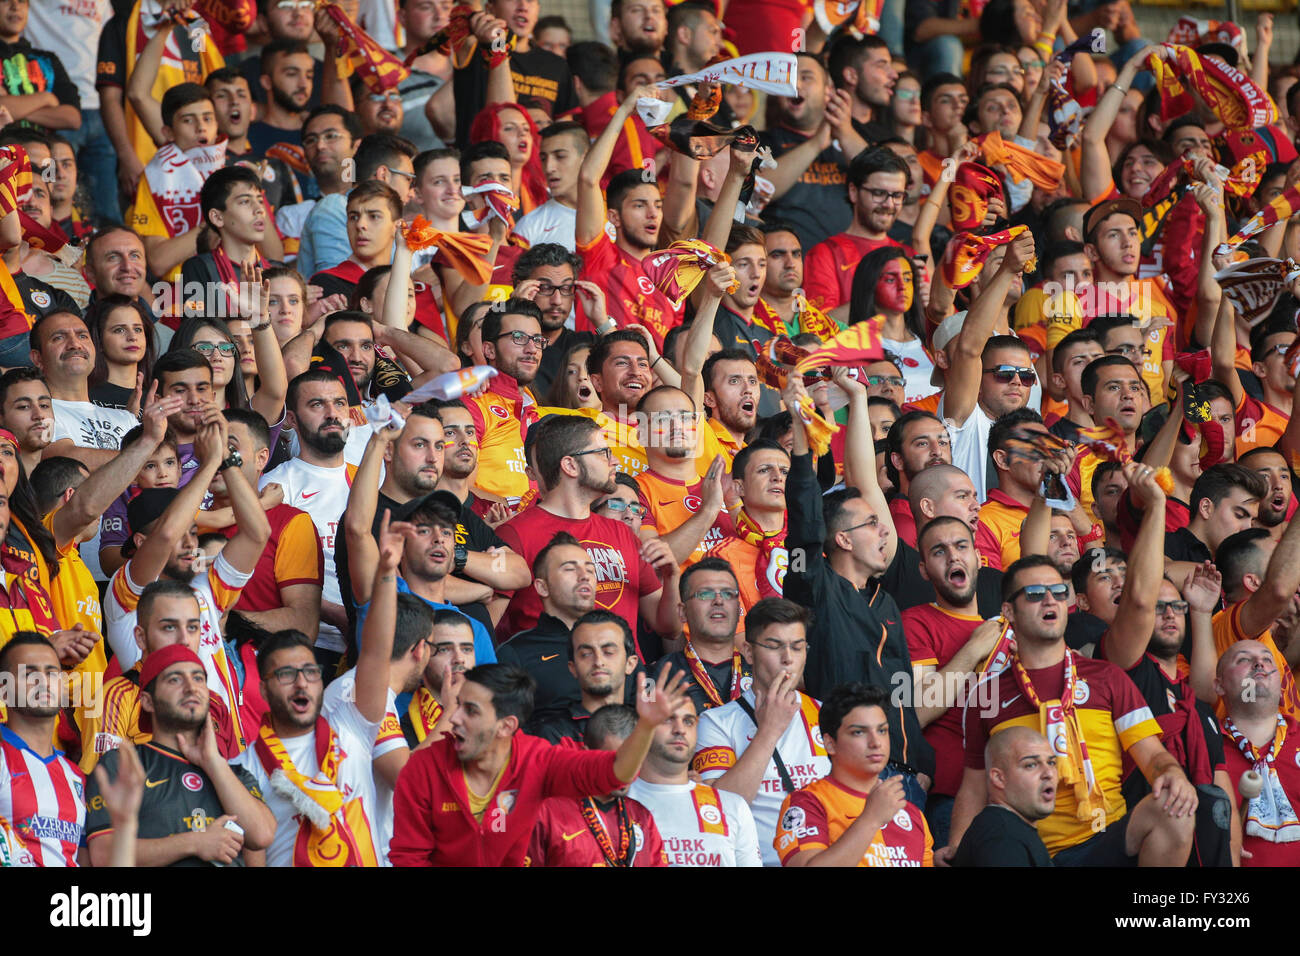 Fans of Galatasaray Istanbul cheer on their team during a friendly game against SK Rapid Vienna, Ernst-Happel-Stadium, - Stock Image